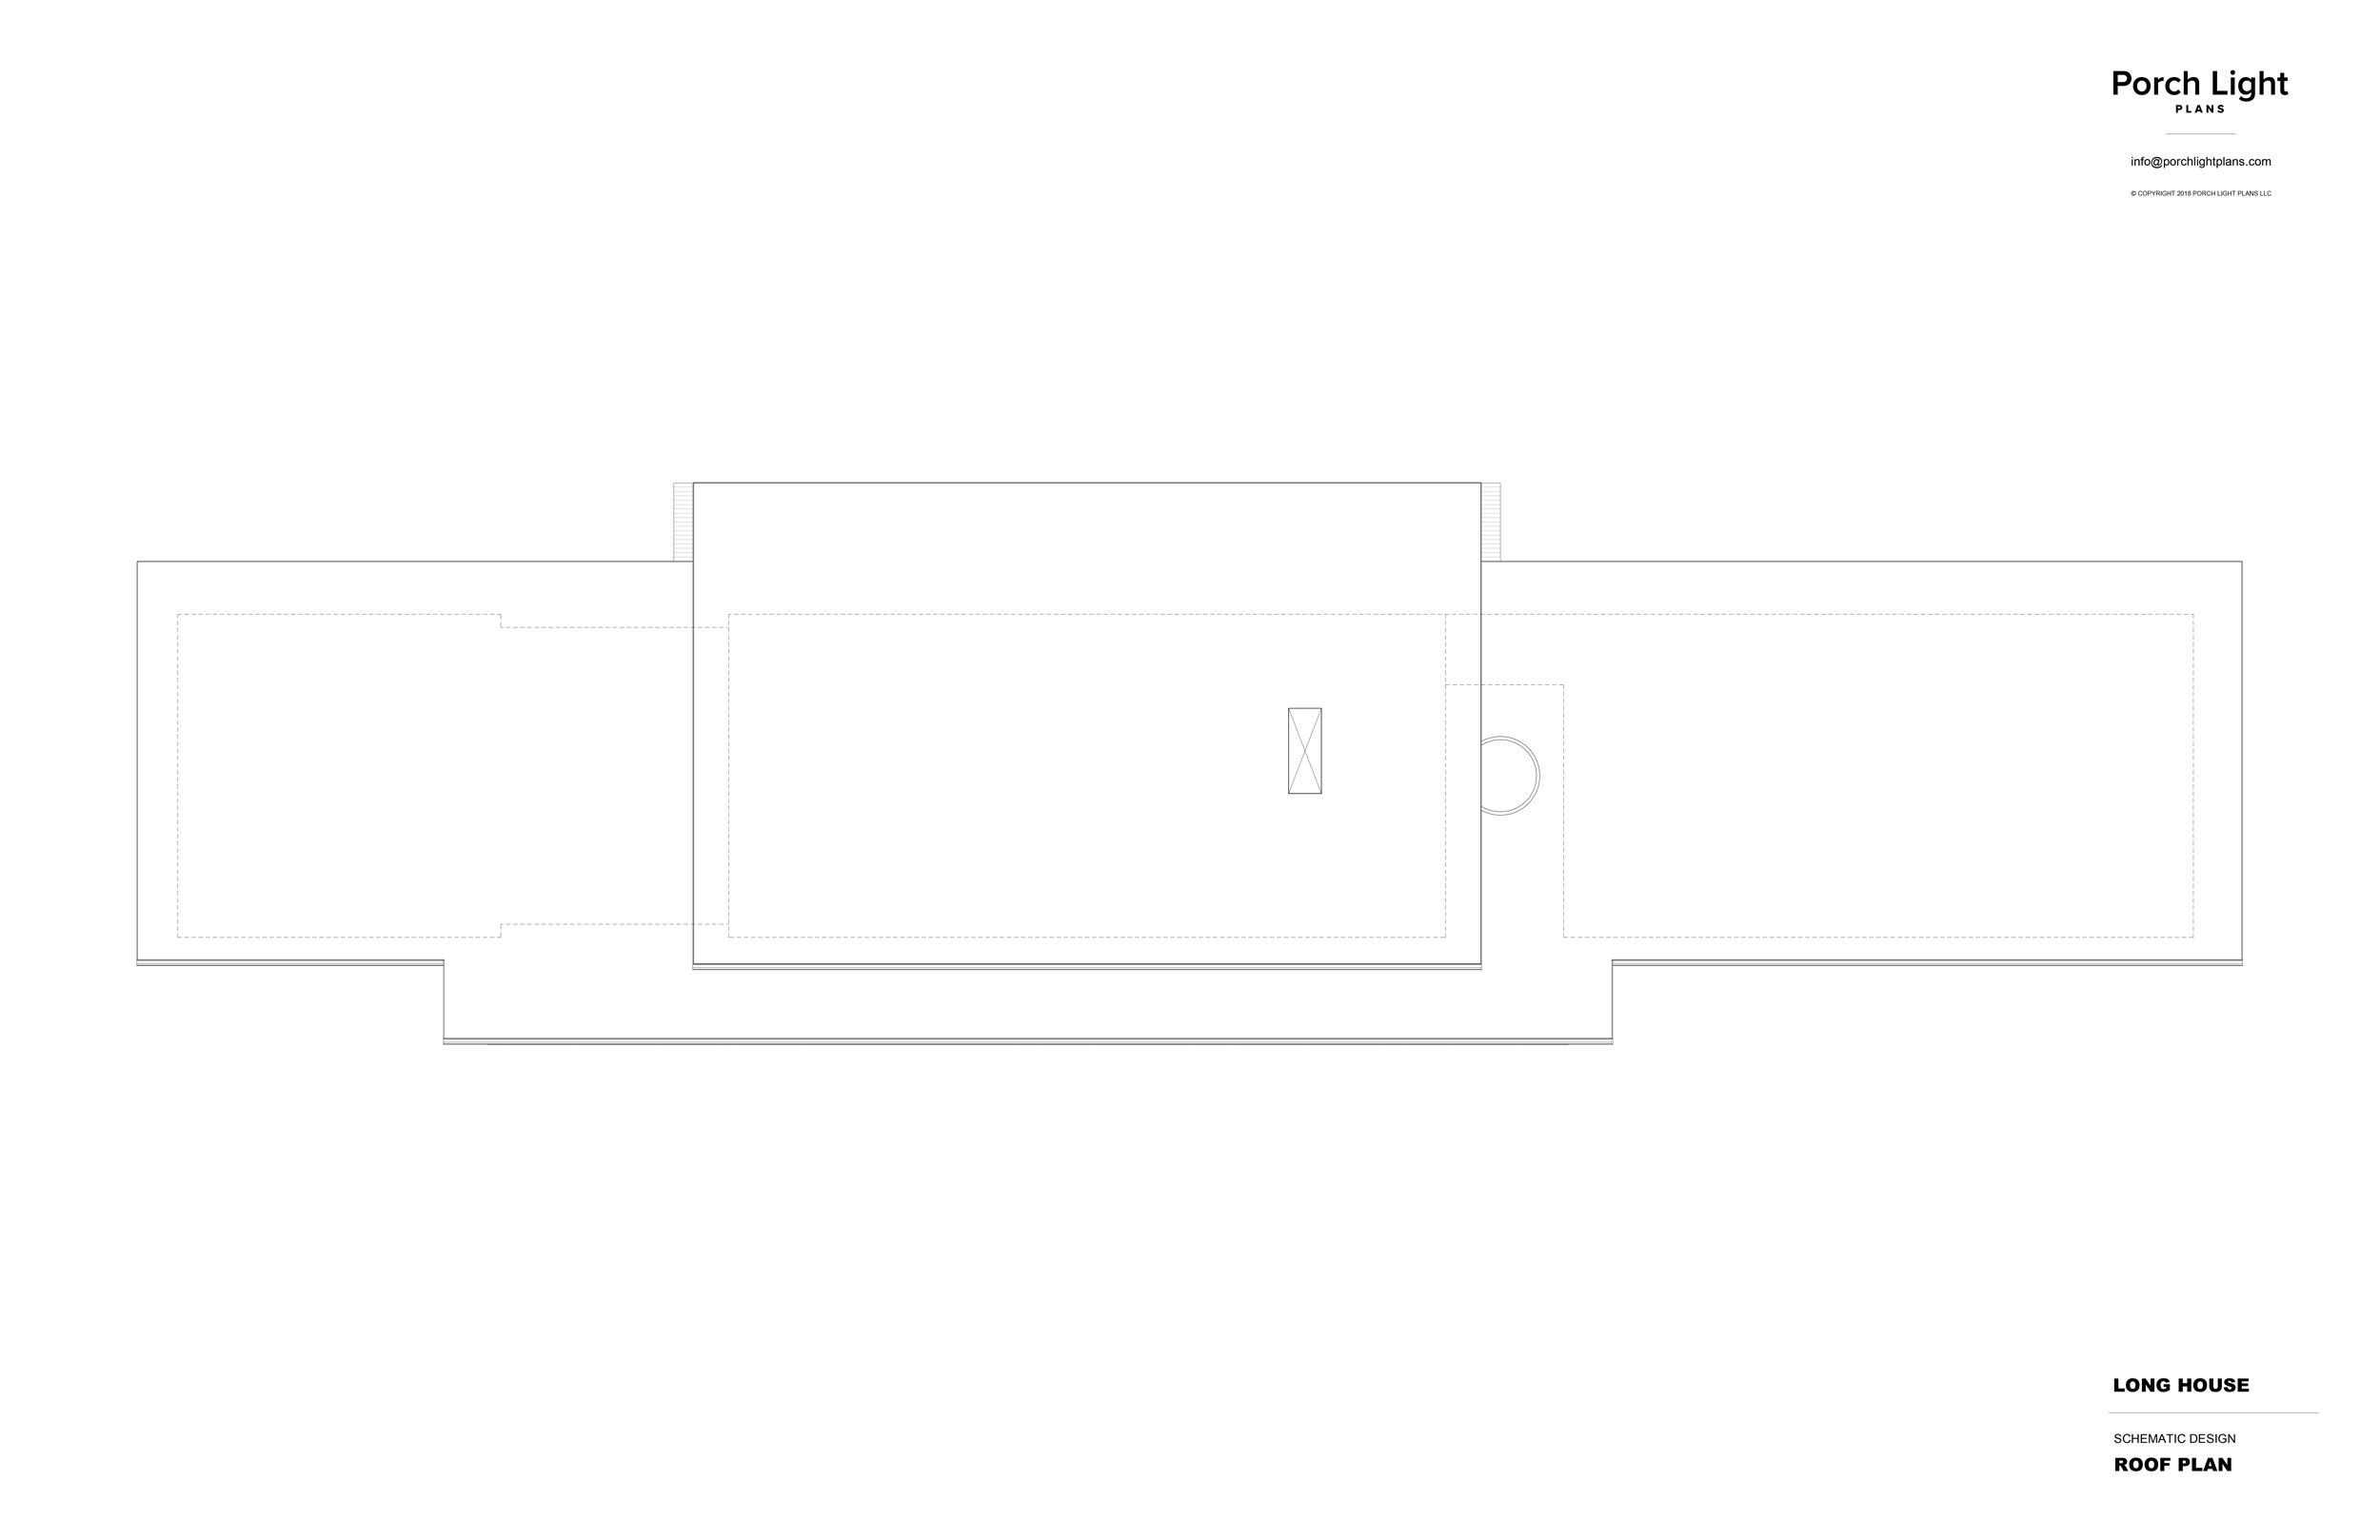 long-house-roof-plan.png